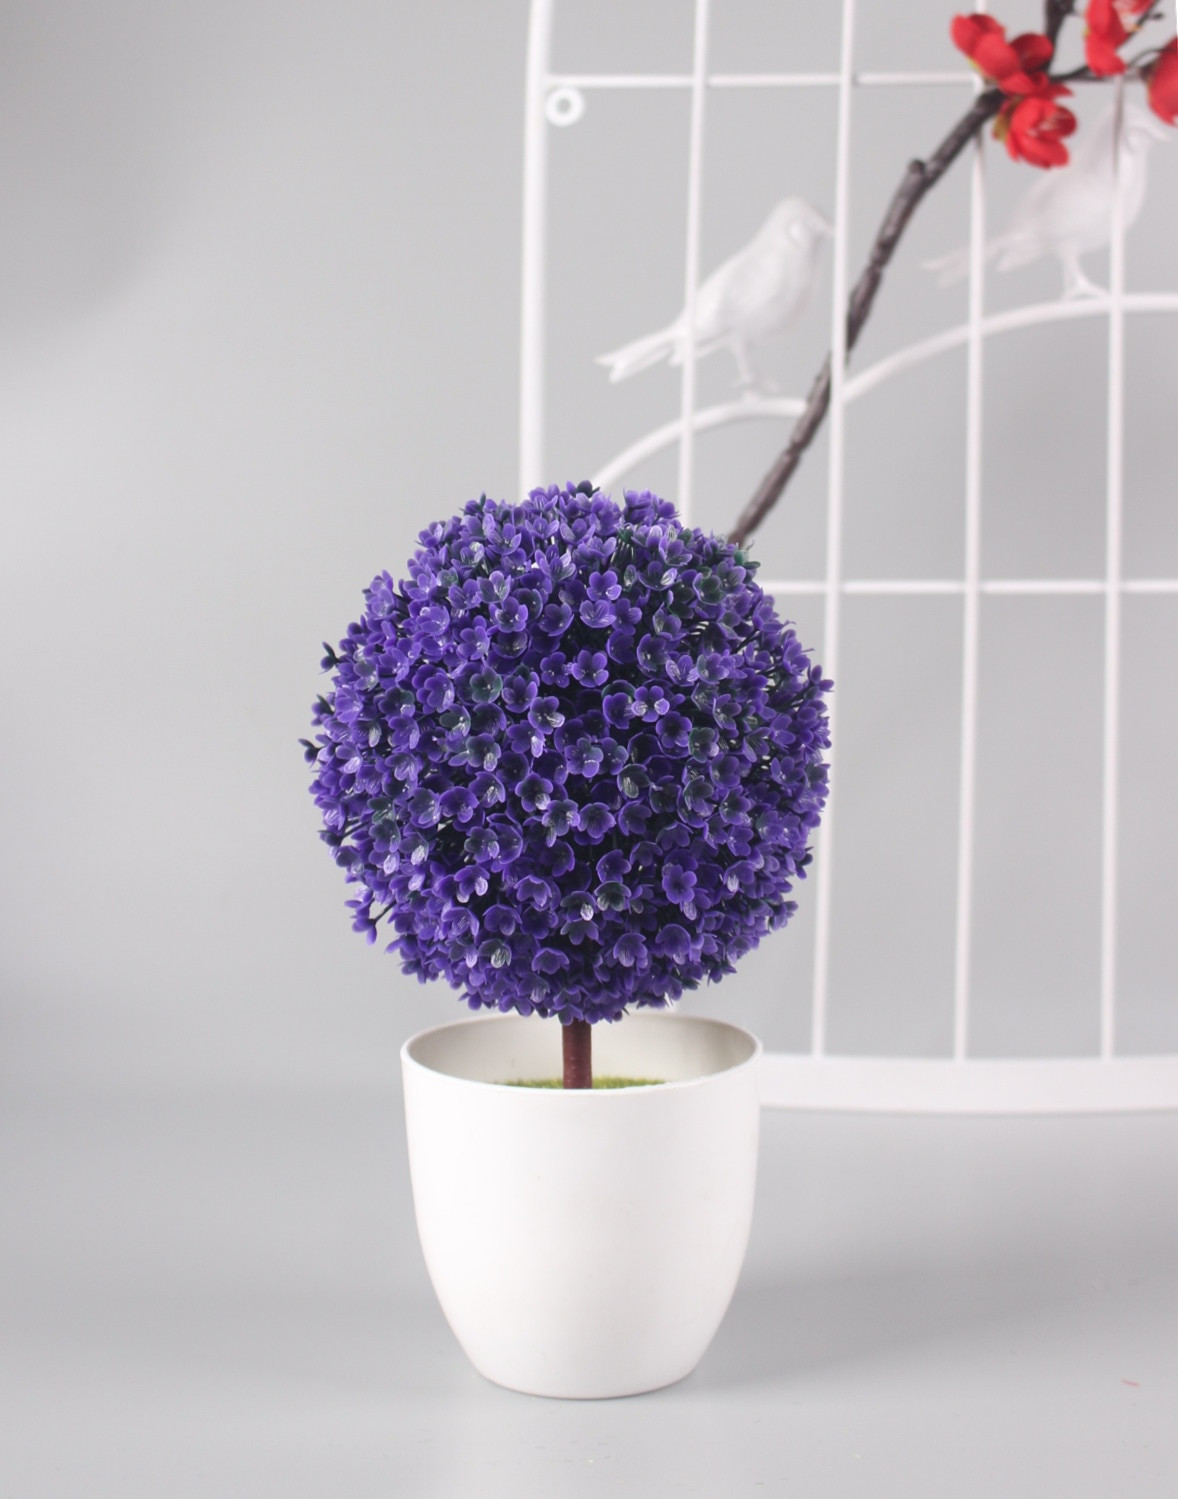 Lavender Vase Fillers Of Aliexpress Com Buy 1 Set Ball Flower Vase Artificial Potted Intended for Best Price Thank You